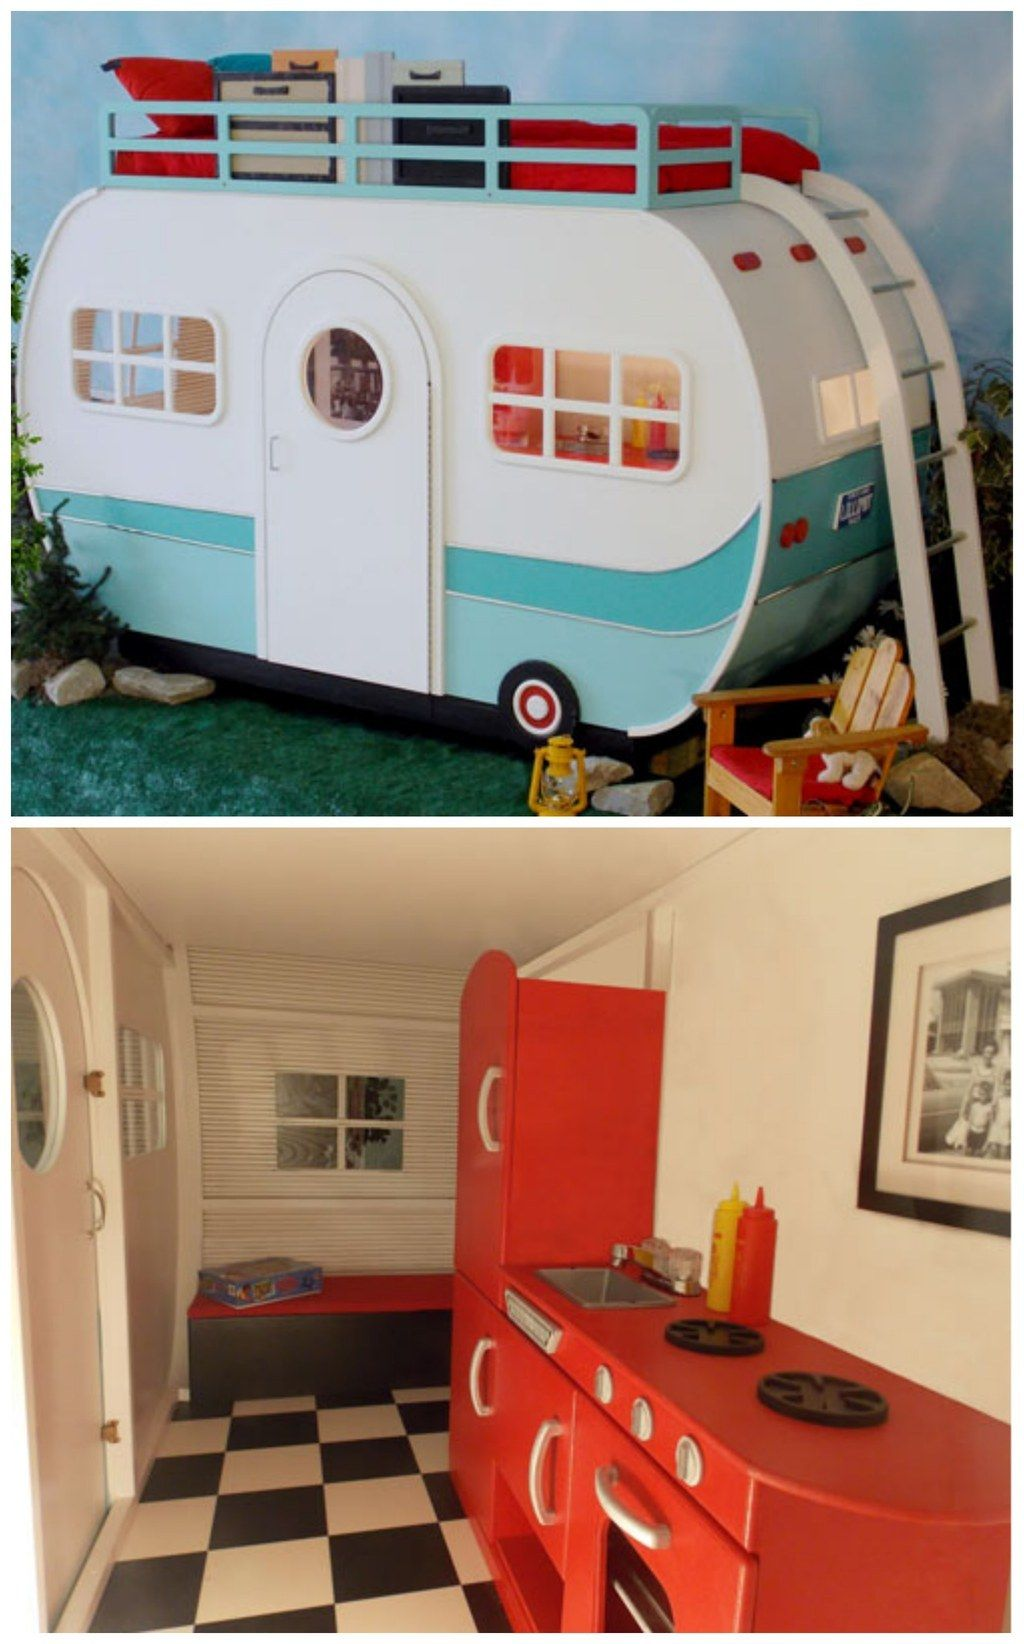 23 Beds Your Kids Will Lose Their Minds Over Cool Beds For Kids